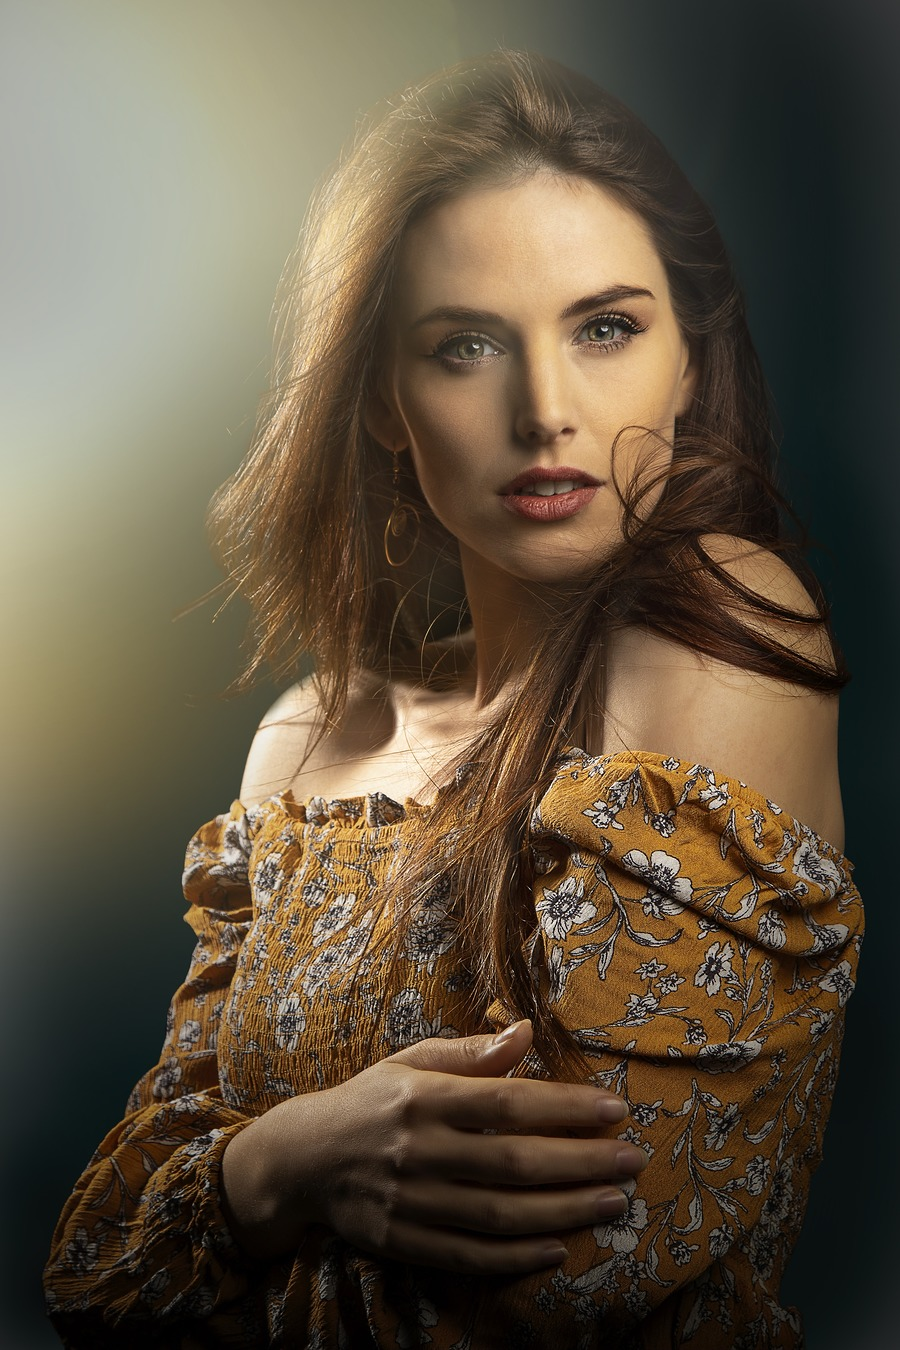 Backlit beaut! / Photography by DigiSnapper, Model Cariad Celis, Makeup by Cariad Celis, Post processing by DigiSnapper, Assisted by KieranDahl / Uploaded 7th December 2019 @ 04:29 PM